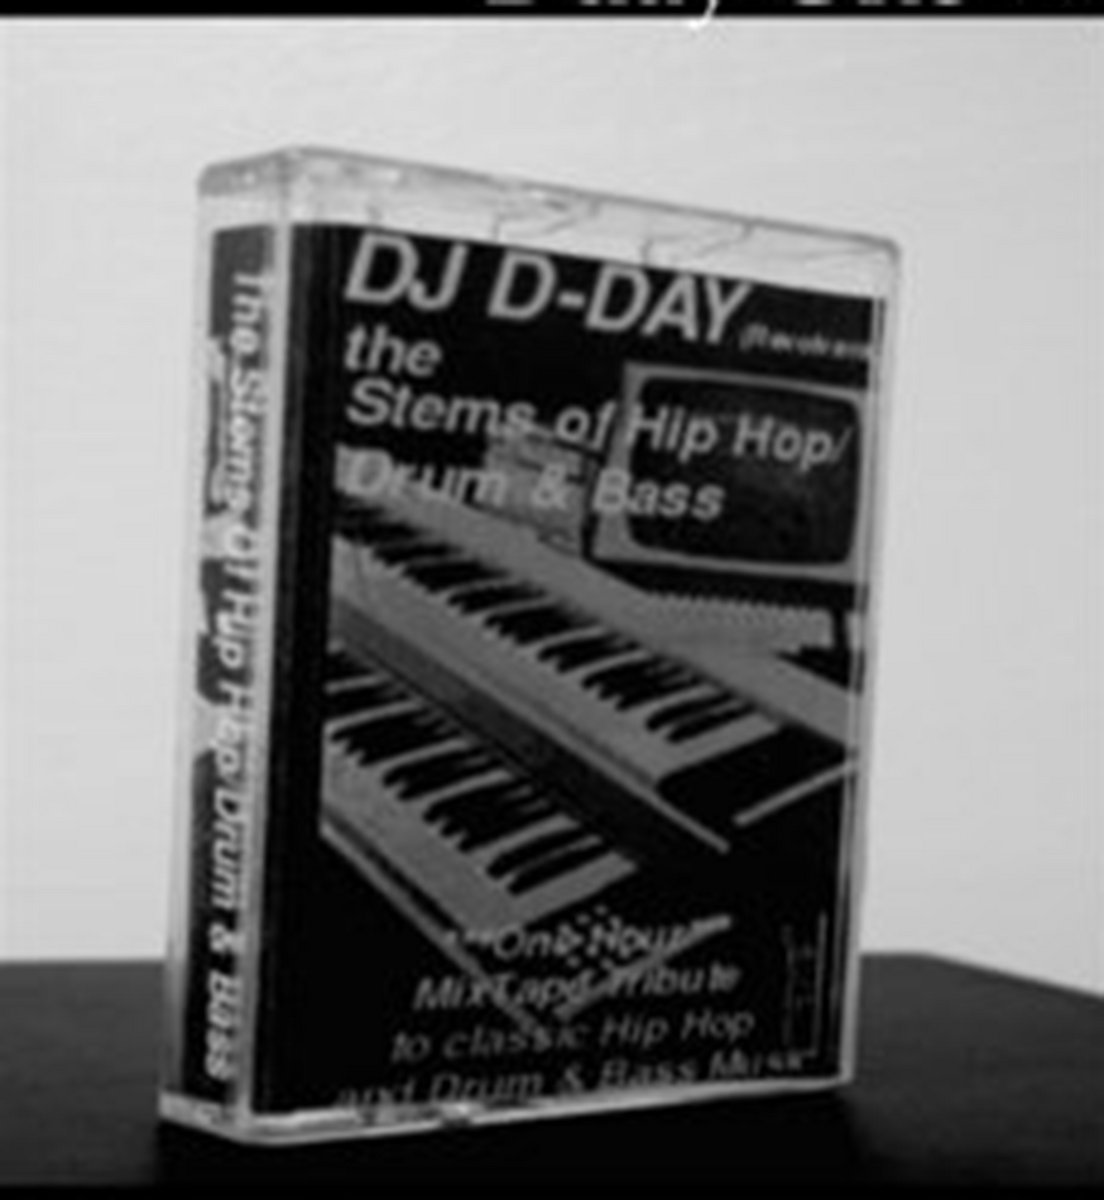 Stems Of Hip Hop (Drum&Bass/Classic Hip Hop Mix) | Dday One